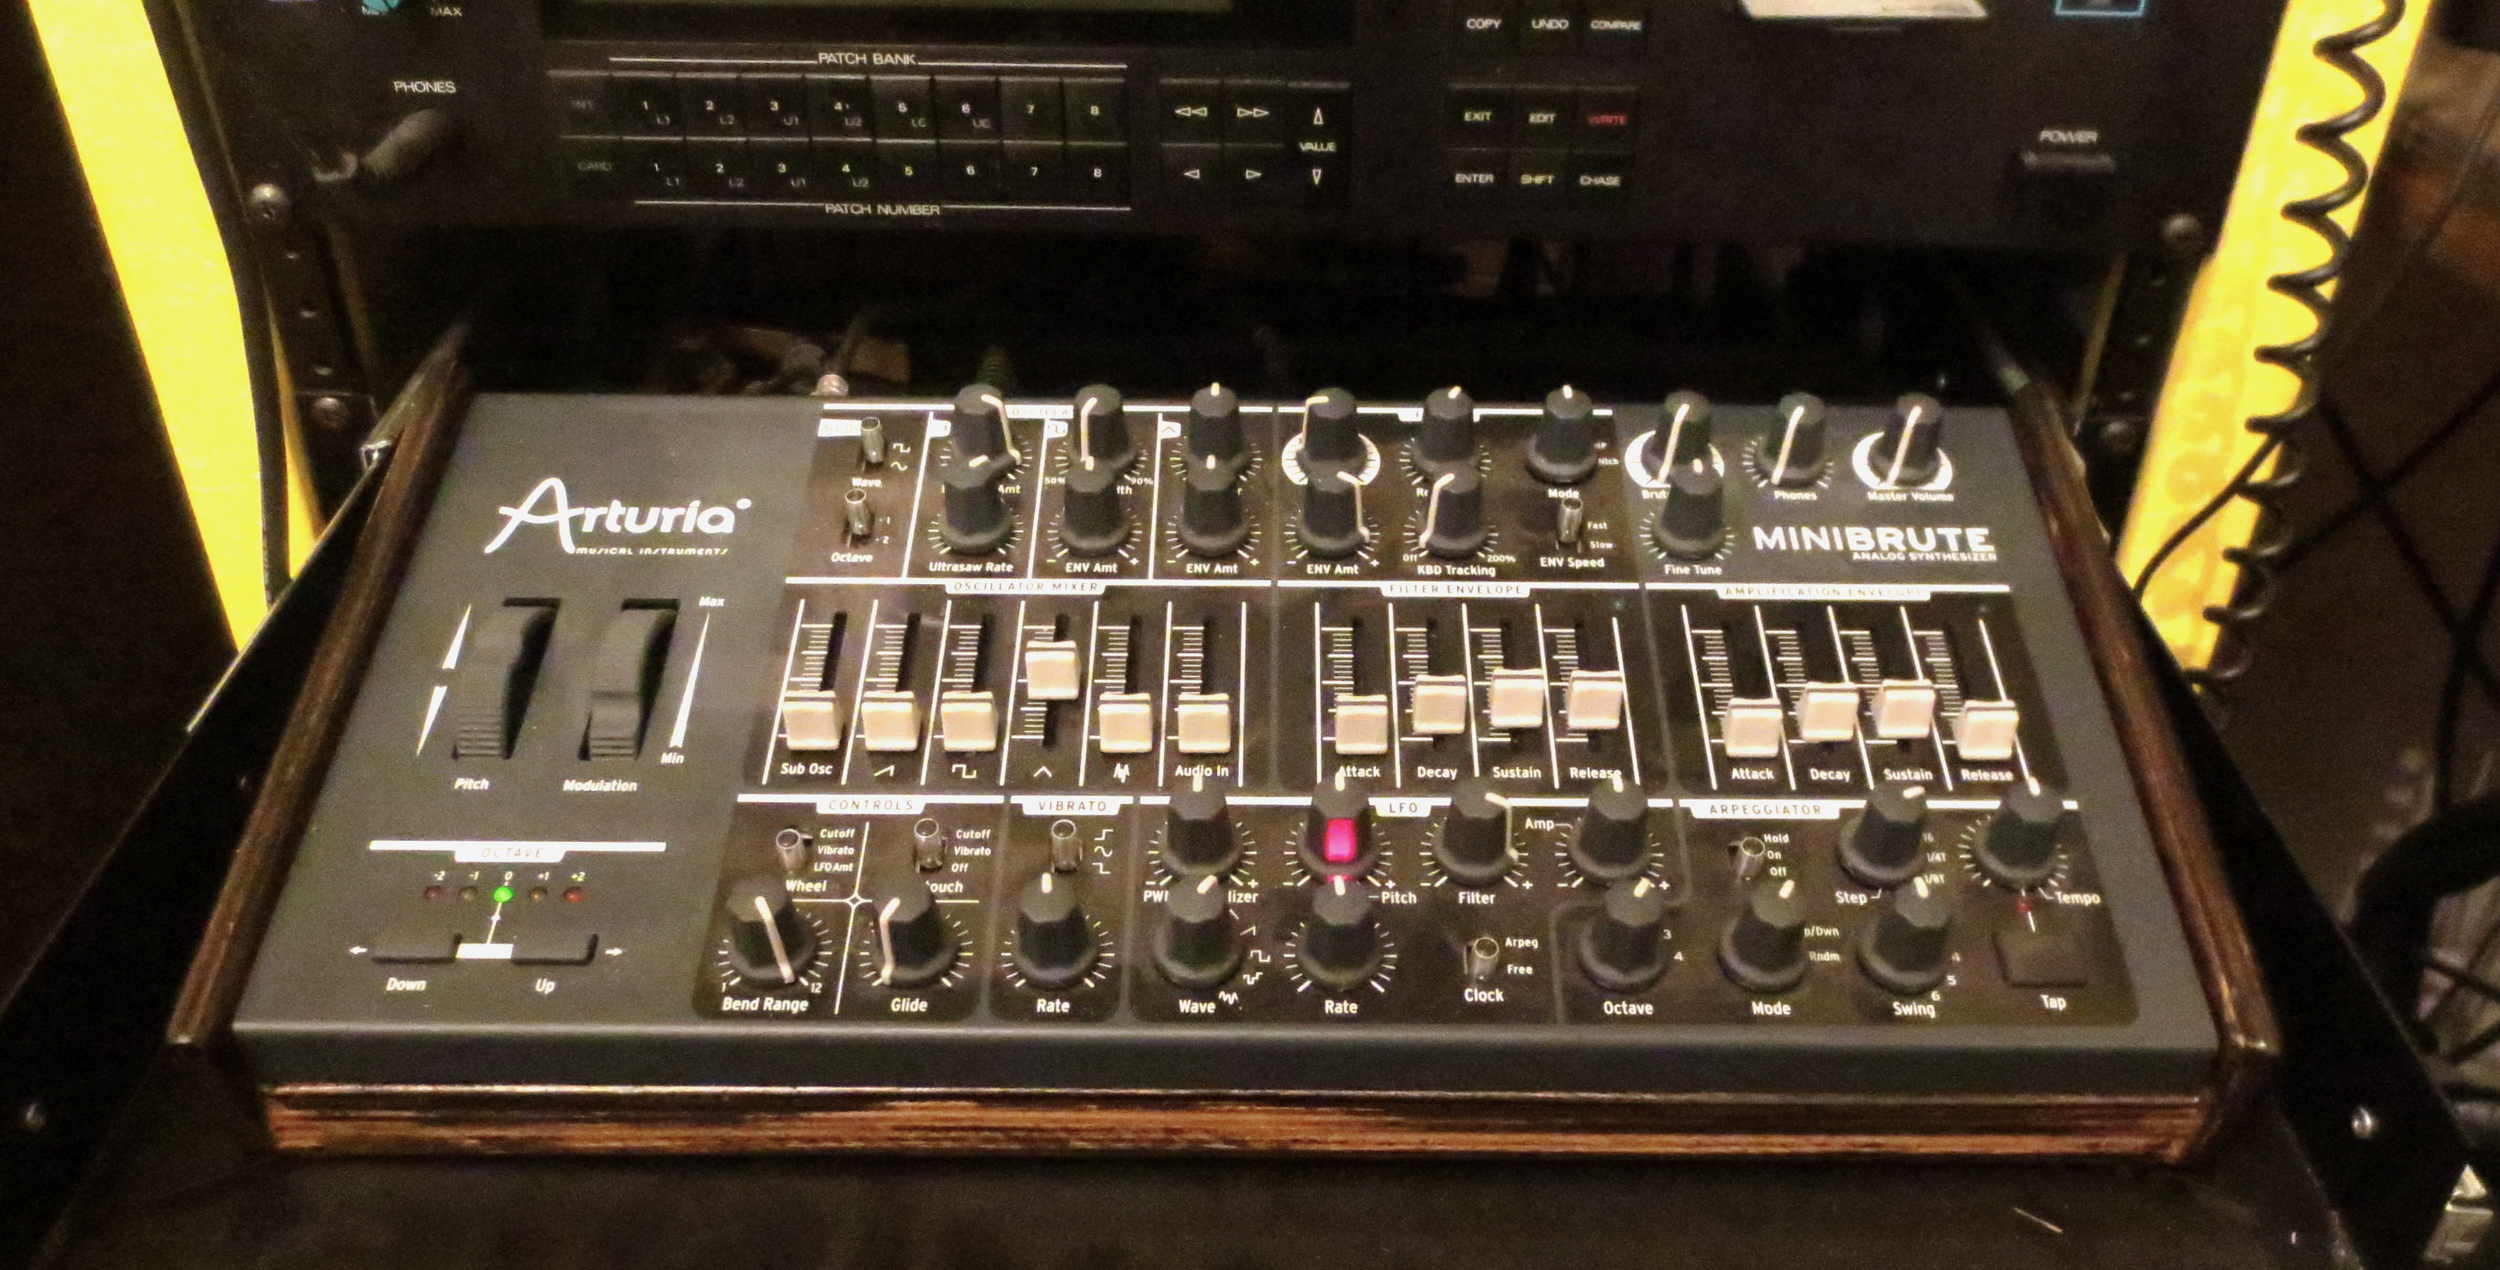 Got me a minibrute module! It's nice to still have the pitch and mod wheels intact.